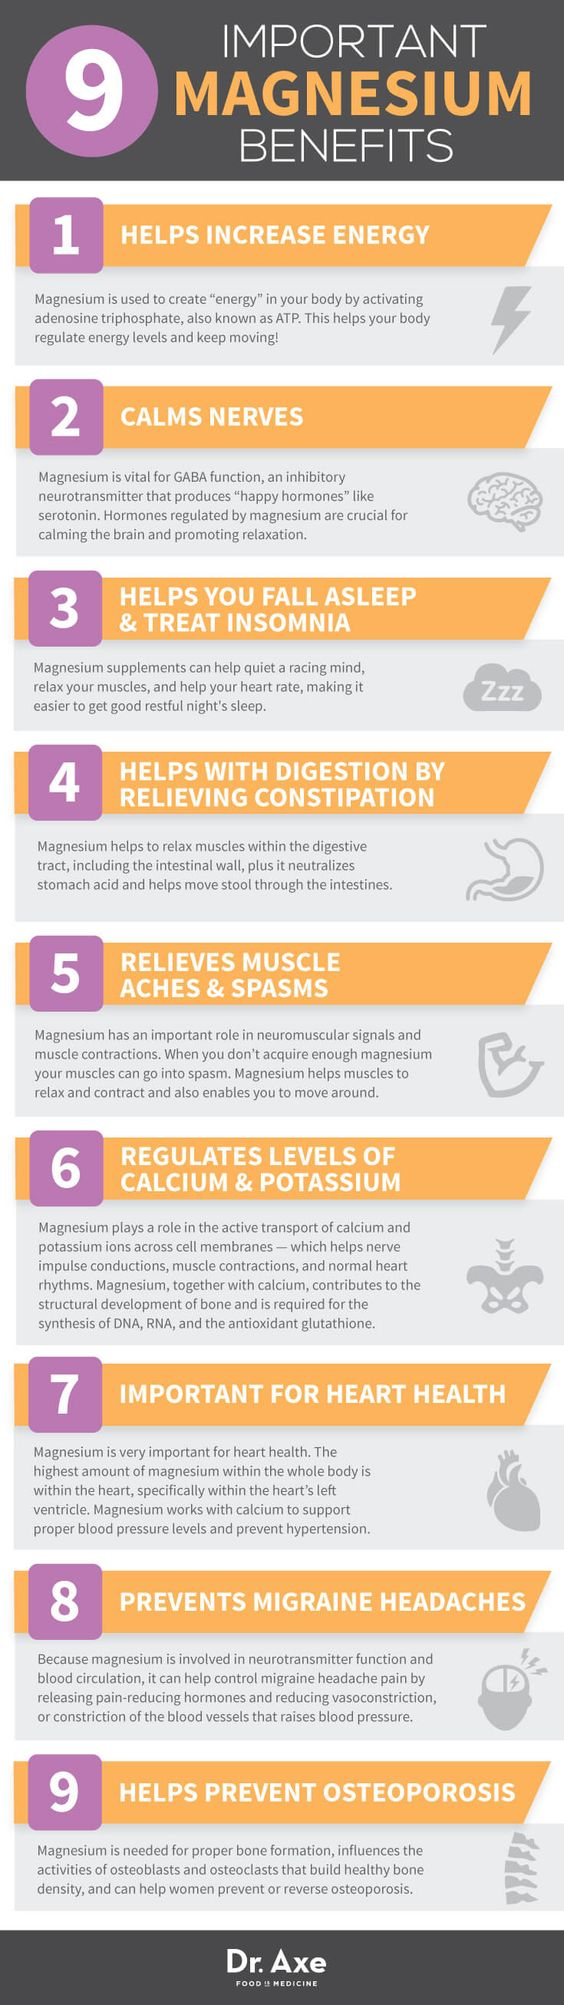 It's a good idea to consider taking magnesium supplements and eating magnesium-rich foods regularly, as magnesium deficiency is one of the.: